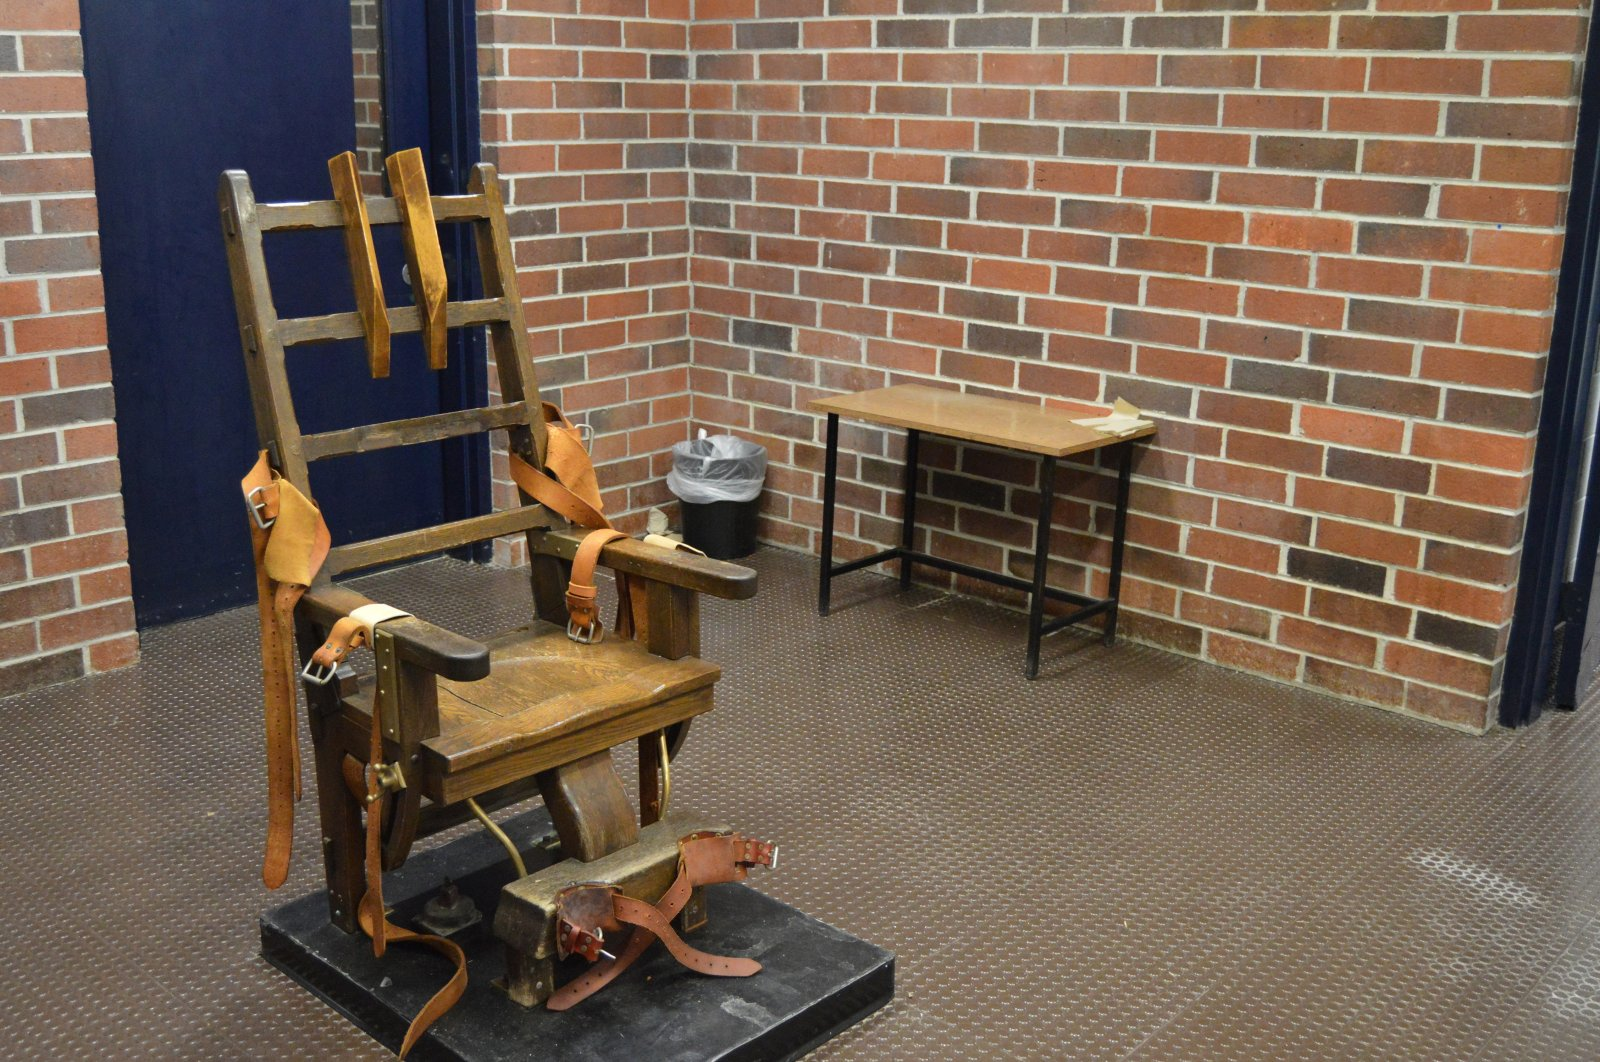 This file photo provided by the South Carolina Department of Corrections shows the state's 109-year-old electric chair in Columbia, S.C., U.S., March 2019. (AP via the South Carolina Department of Corrections)